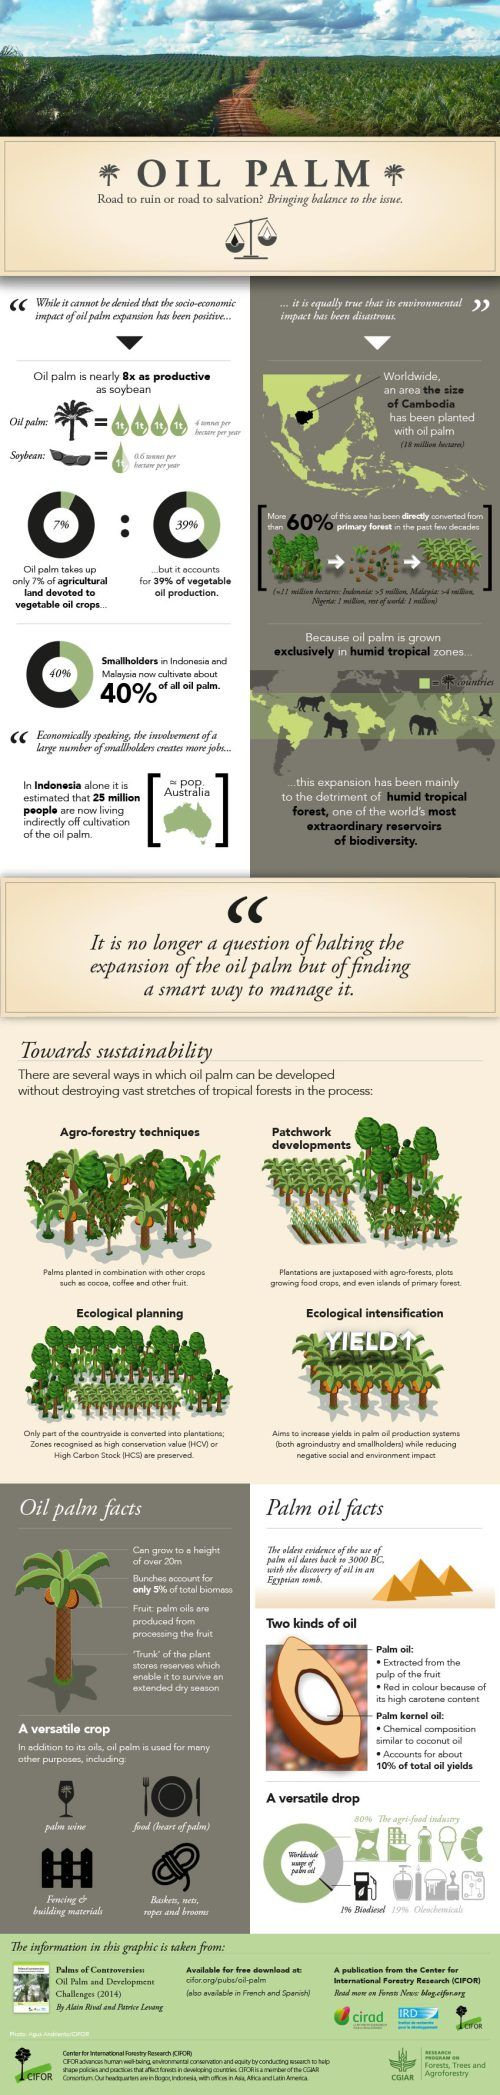 Palm Oil: A visual story | CIFOR Forests News Blog